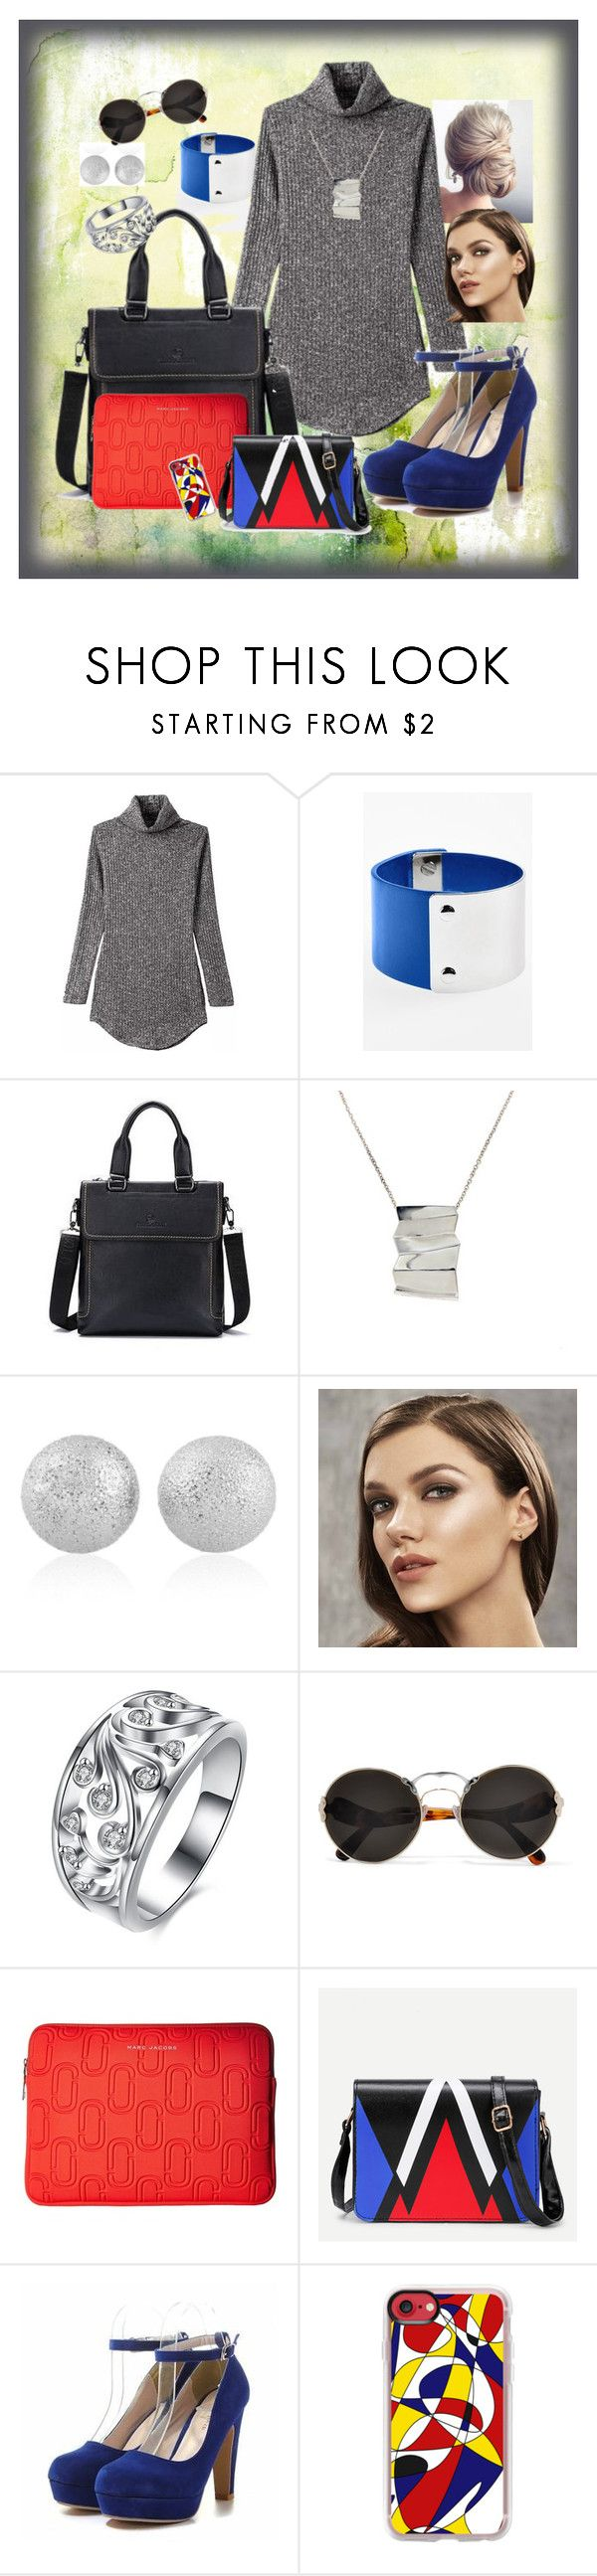 """""""Grey Sweater Dress challenge"""" by divinespiritcreations ❤ liked on Polyvore featuring Leith, Filio, Tiffany & Co., Prada, Marc Jacobs and Casetify"""